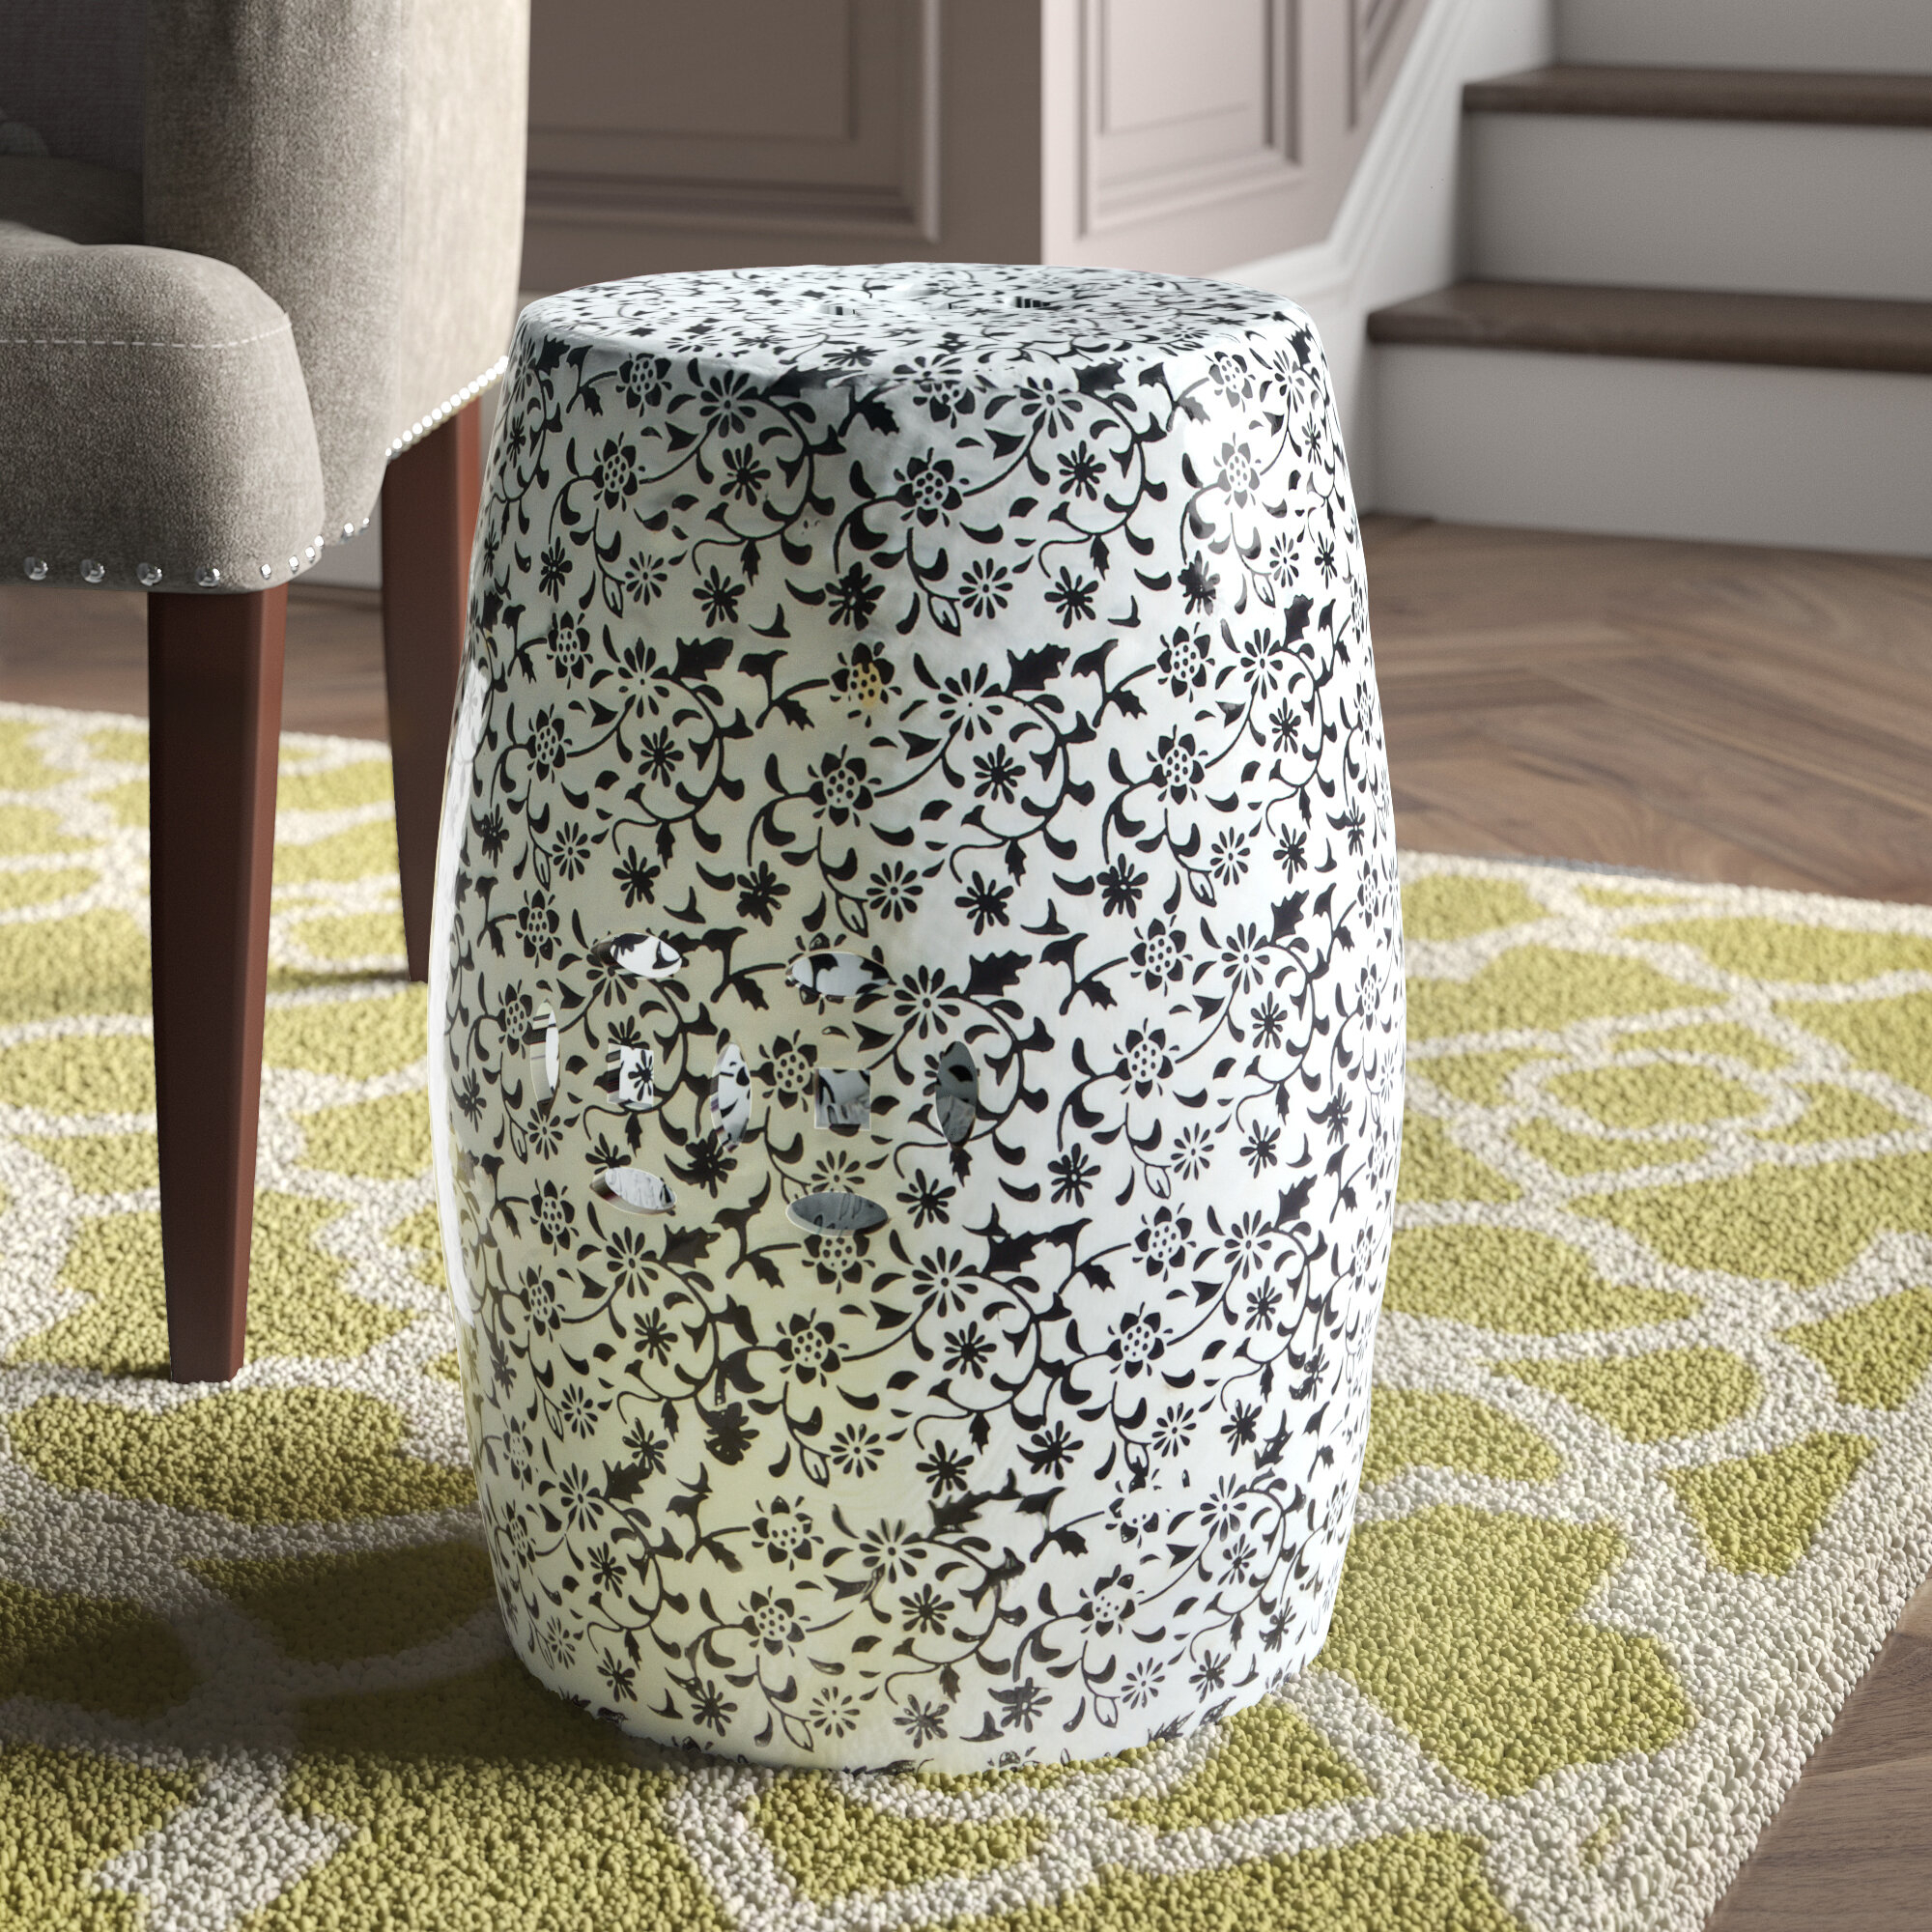 Floral Accent Stools You'Ll Love In 2020 | Wayfair Throughout Irwin Blossom Garden Stools (View 20 of 25)